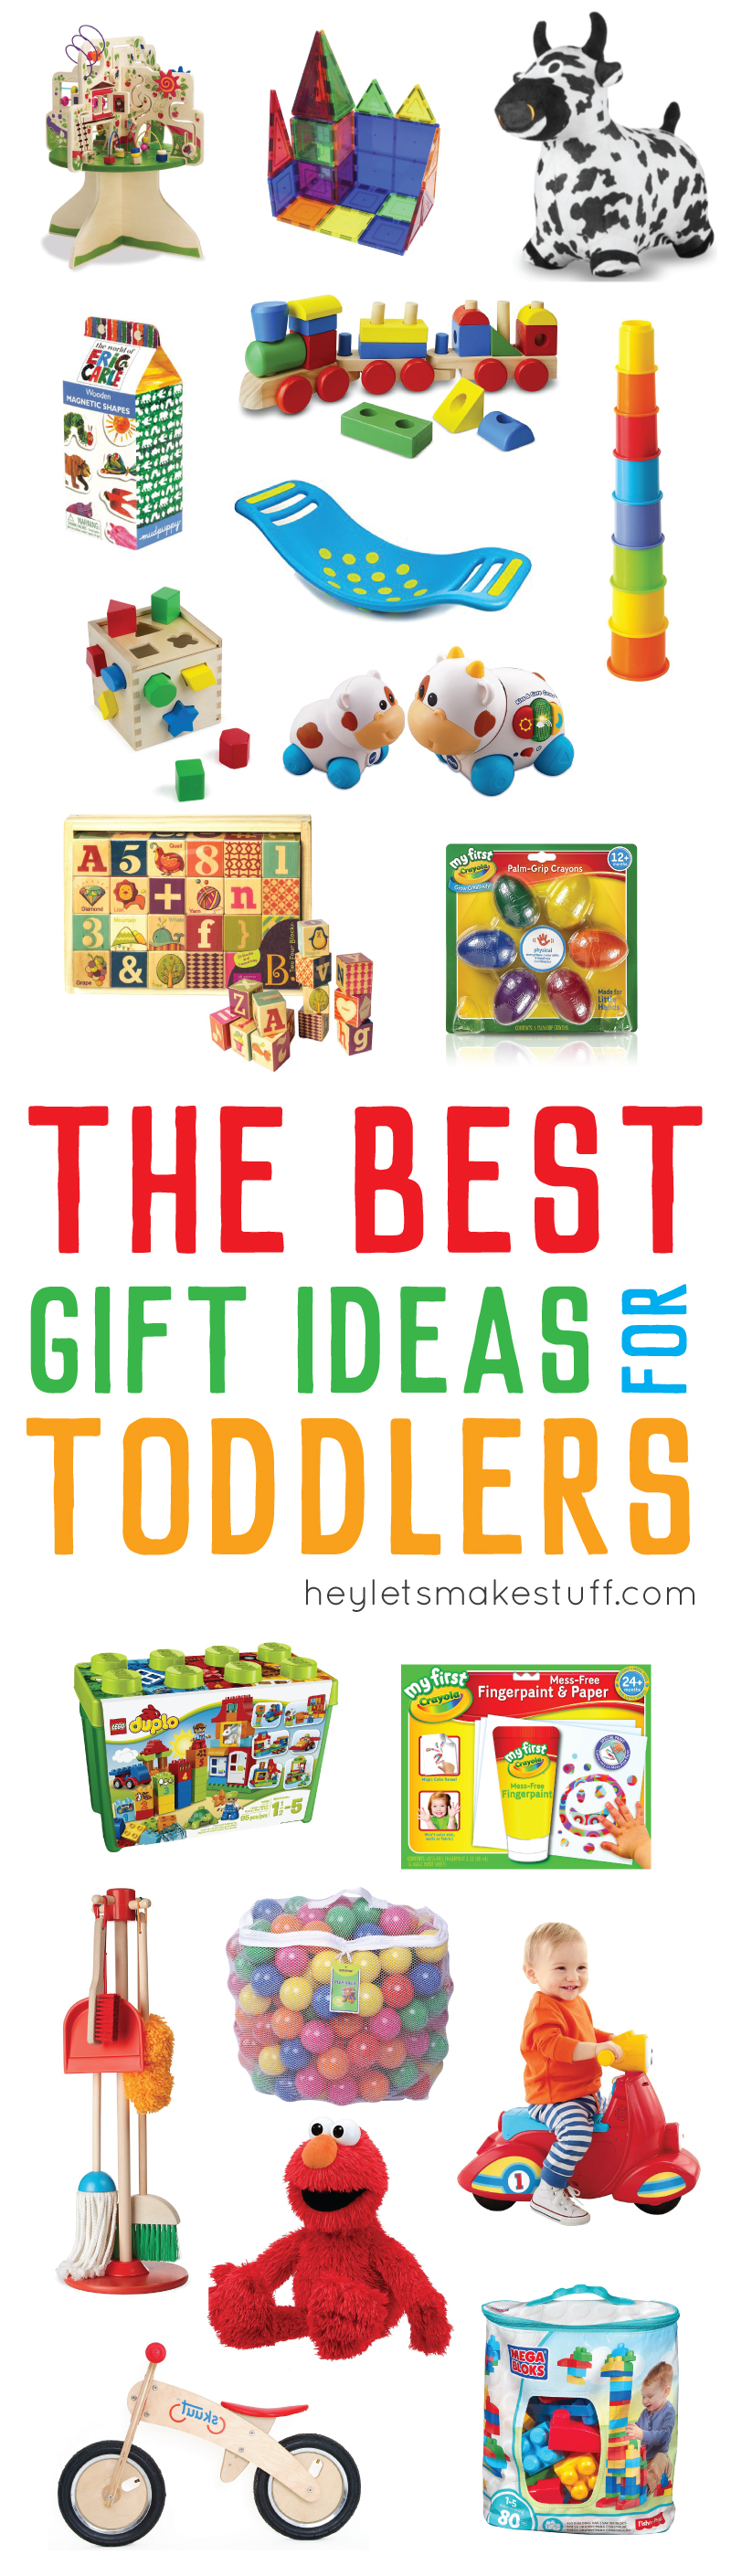 these toddler gifts are totally fun and theyre gender neutral toys so theyre great for everyone fun gift ideas for christmas birthdays and holidays - Gender Neutral Christmas Gifts